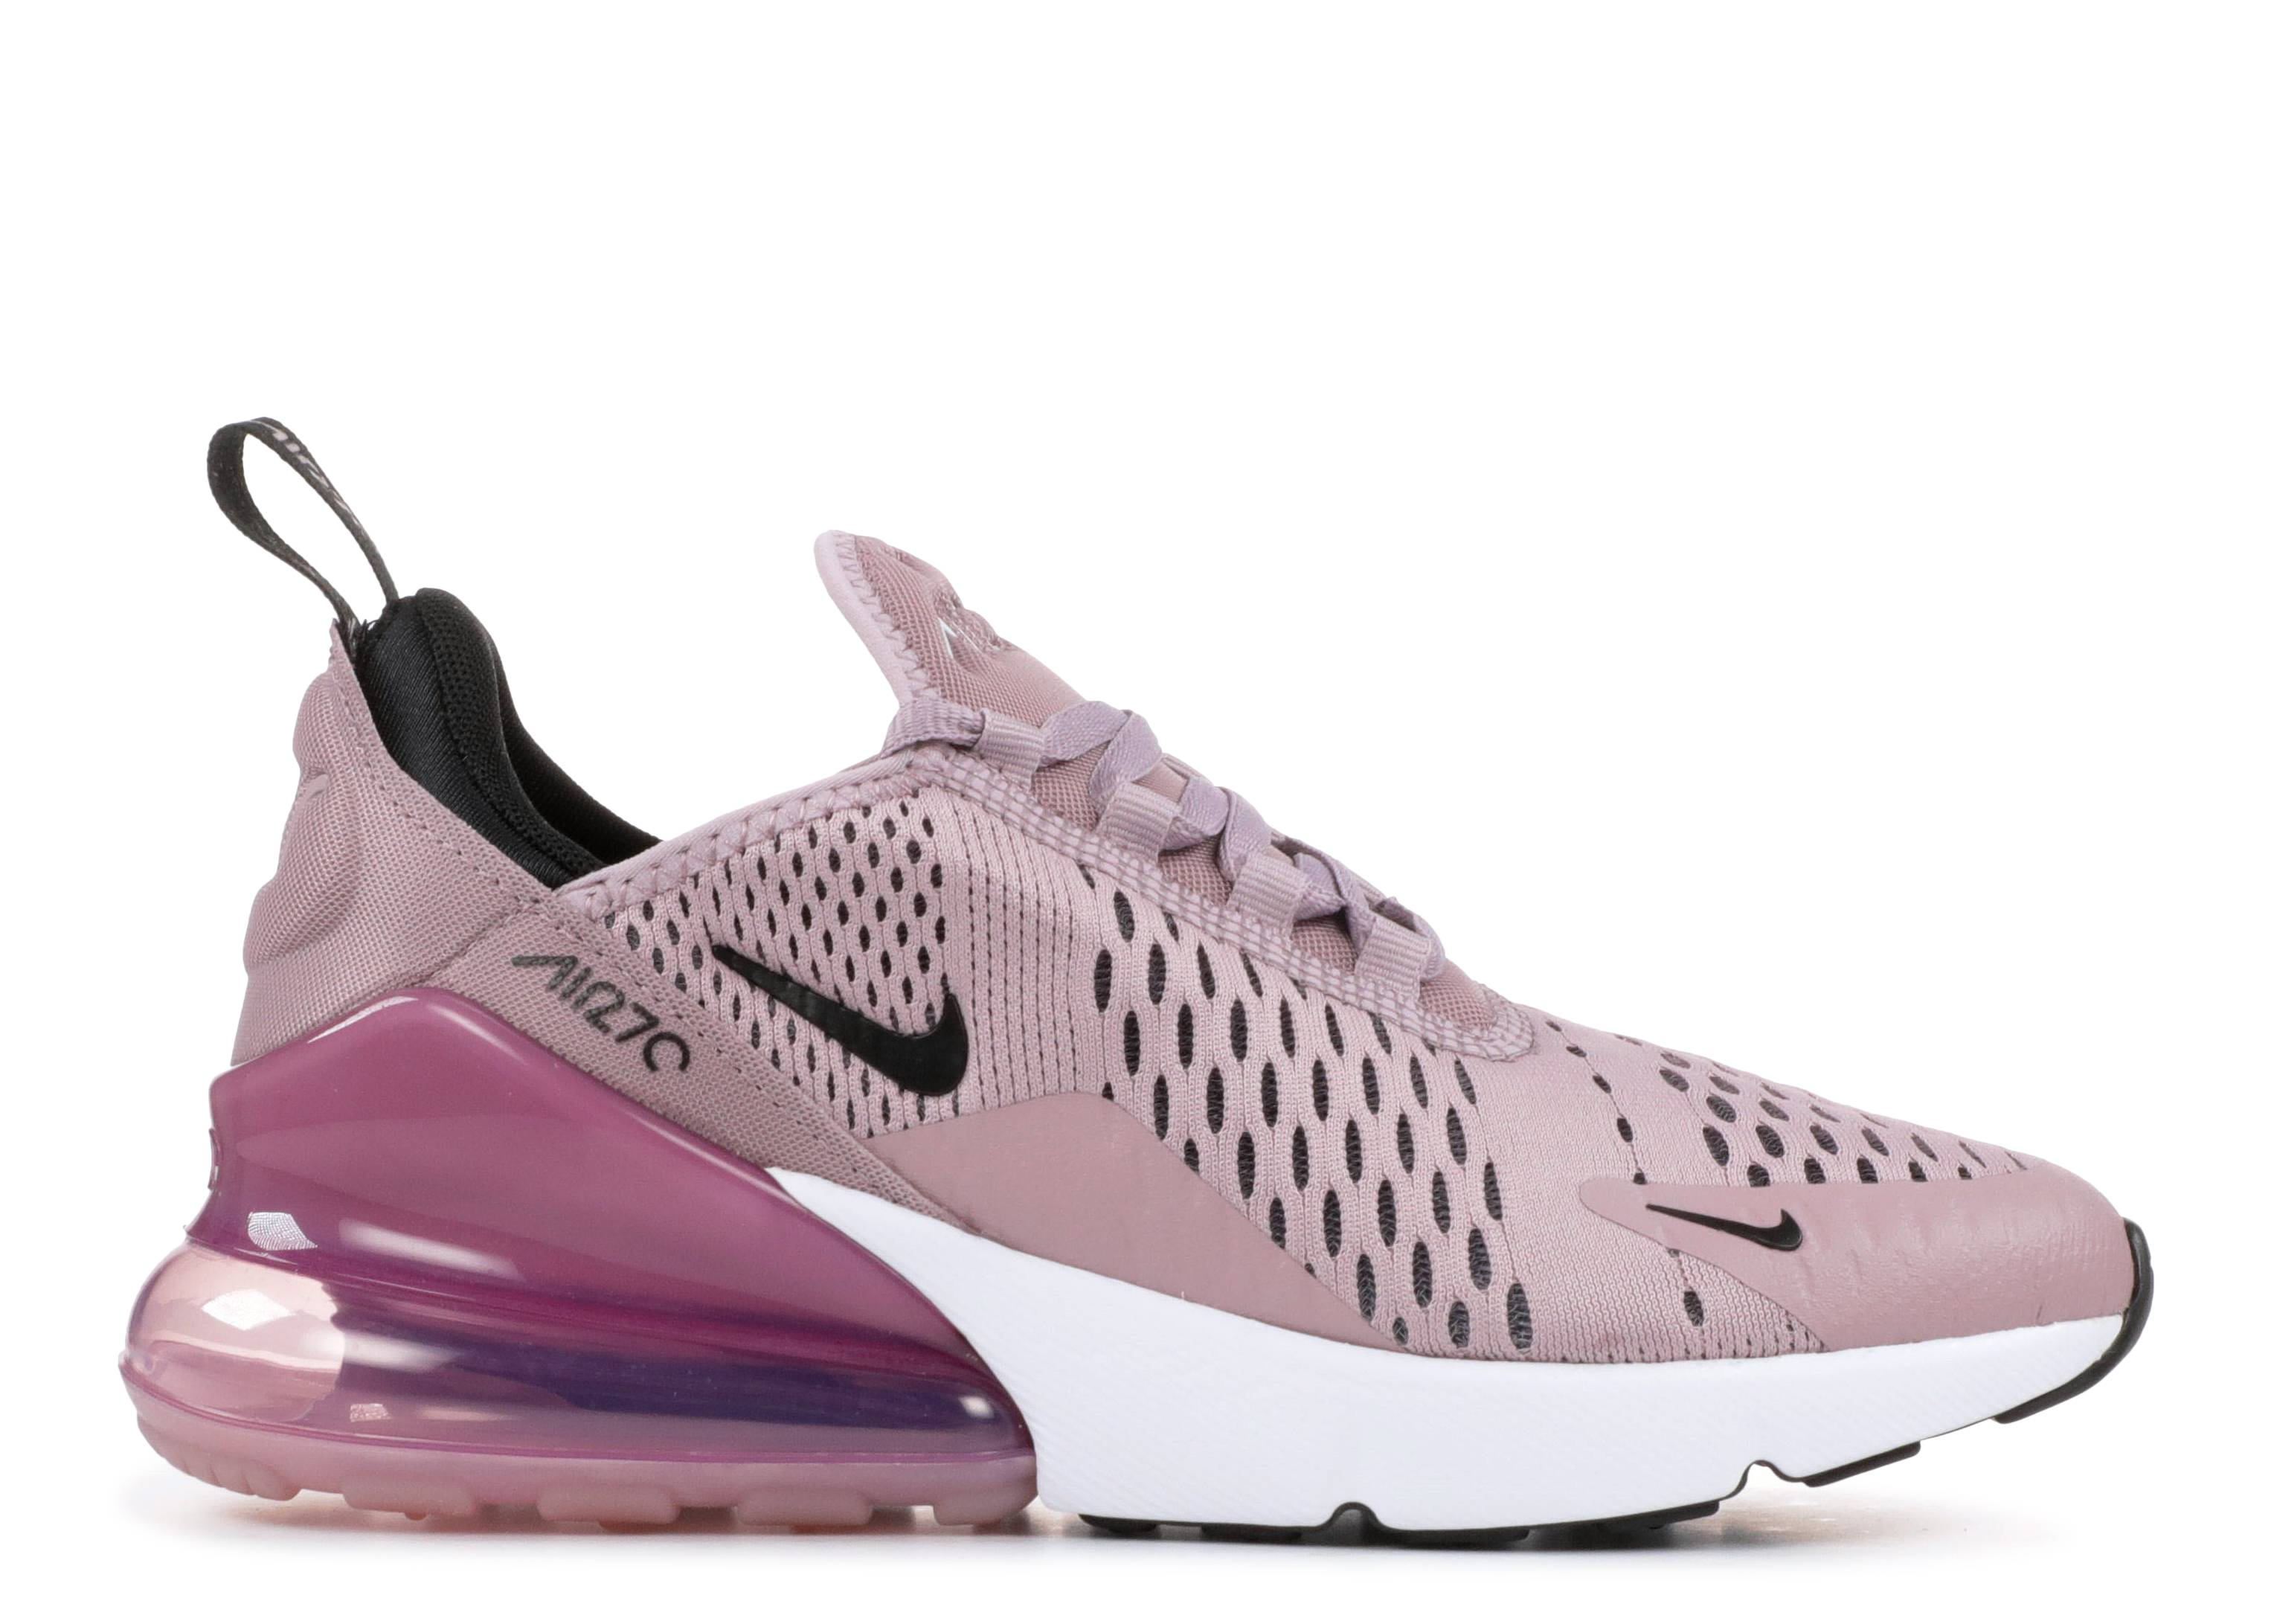 34f769b90ae8 Nike Air Max 270 Gs - Nike - 943345 601 - elemental rose black-white ...